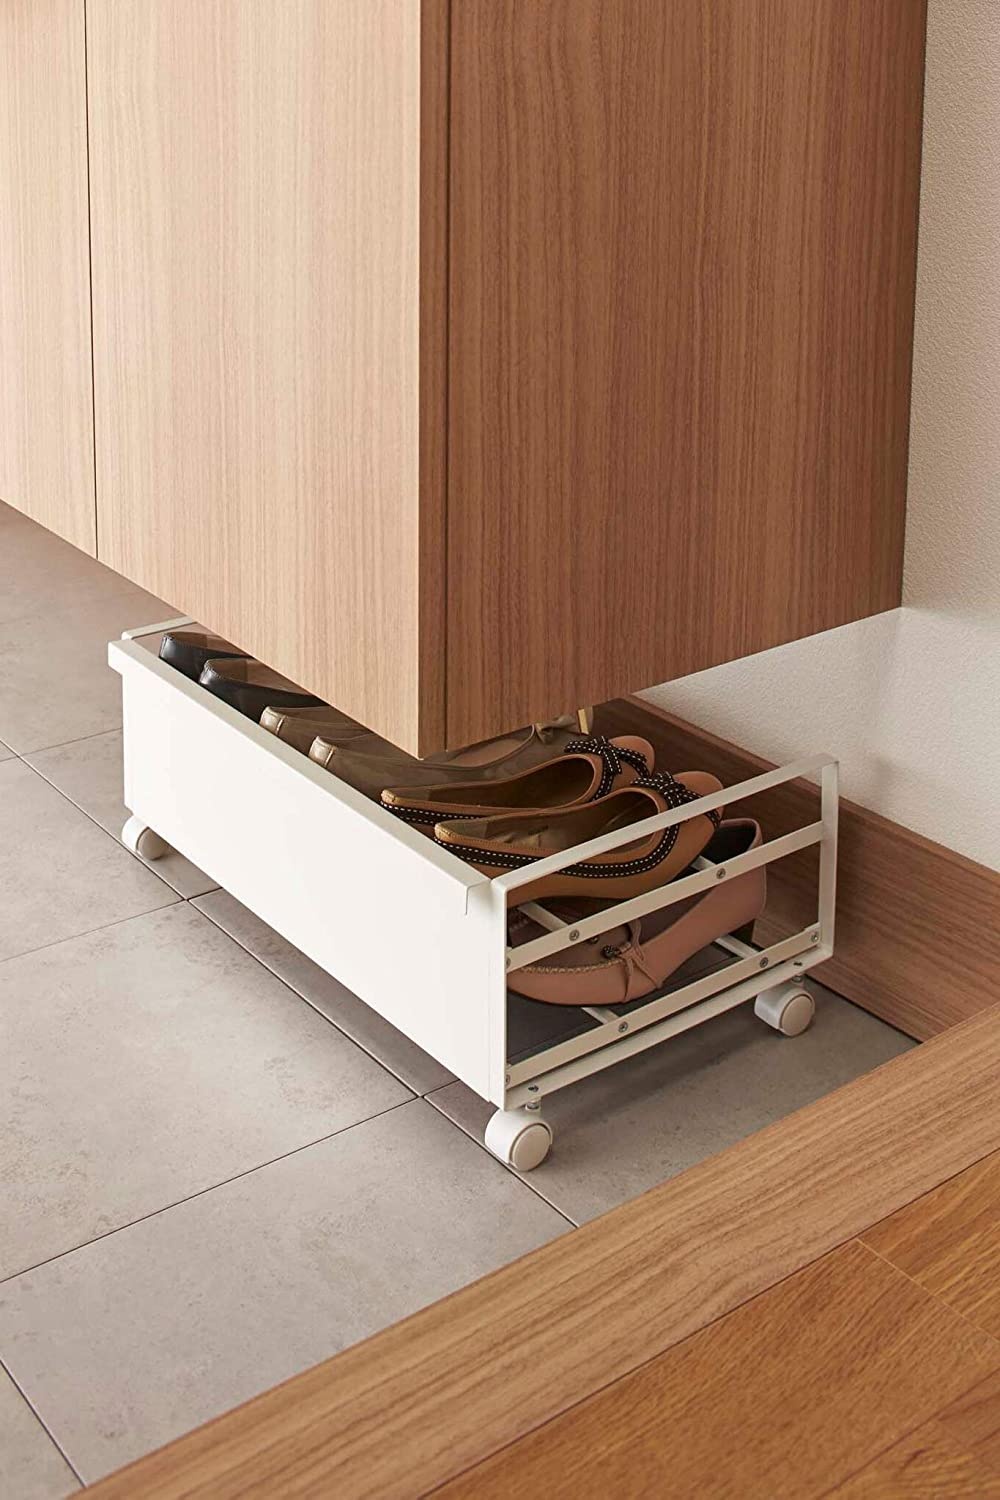 Red Co Black 91253-TNC Space Saving Rectangular Footwear Storage Organization Double Tier Mobile Rolling Shoe Rack